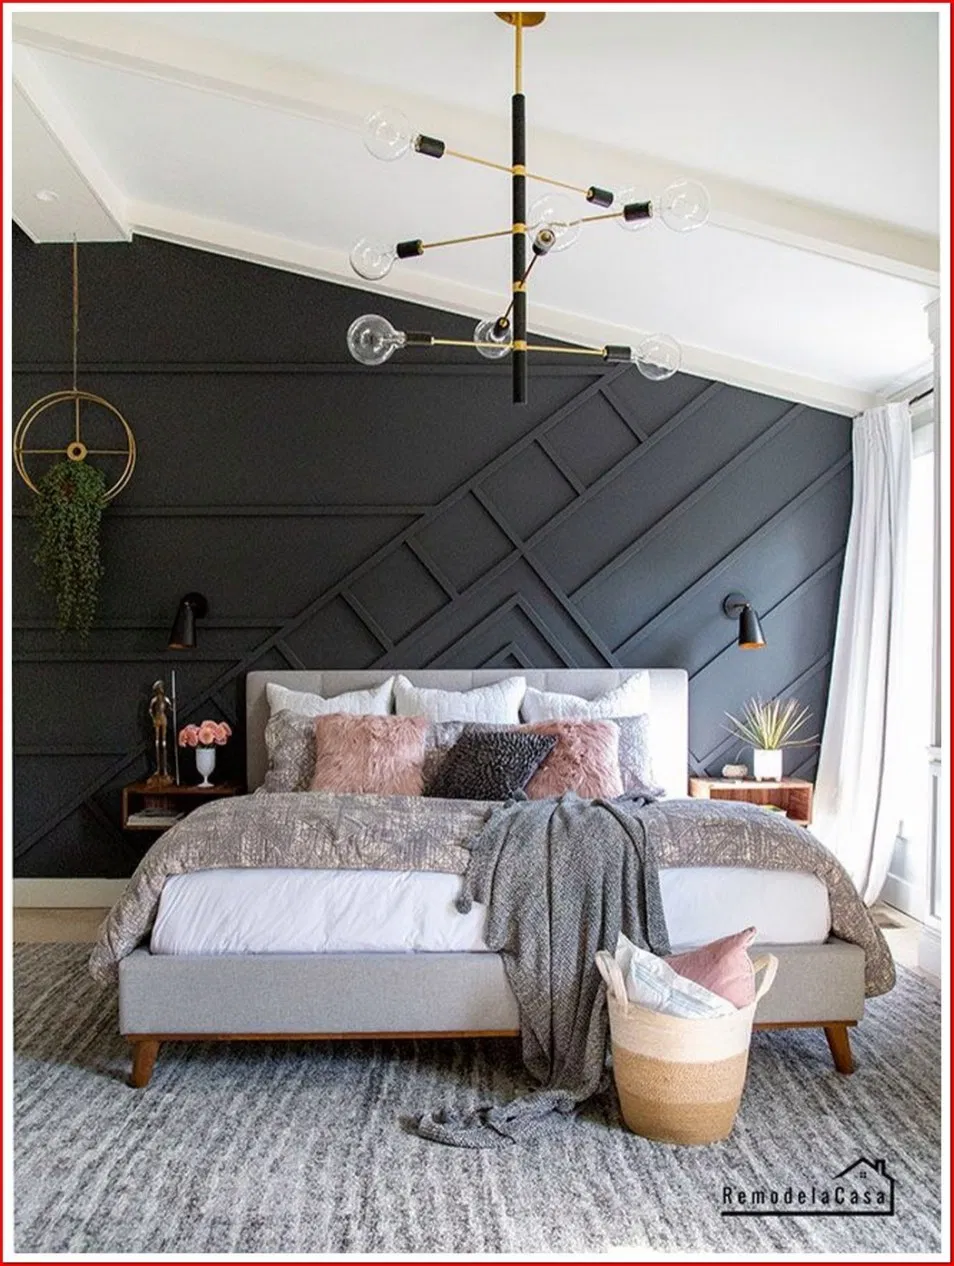 12 Fancy Wall Decor Ideas To Beautify Your Bedroom 00010 In 2020 Mid Century Modern Master Bedroom Modern Master Bedroom Mid Century Modern Bedroom,Pendant Dining Table Lighting Ideas